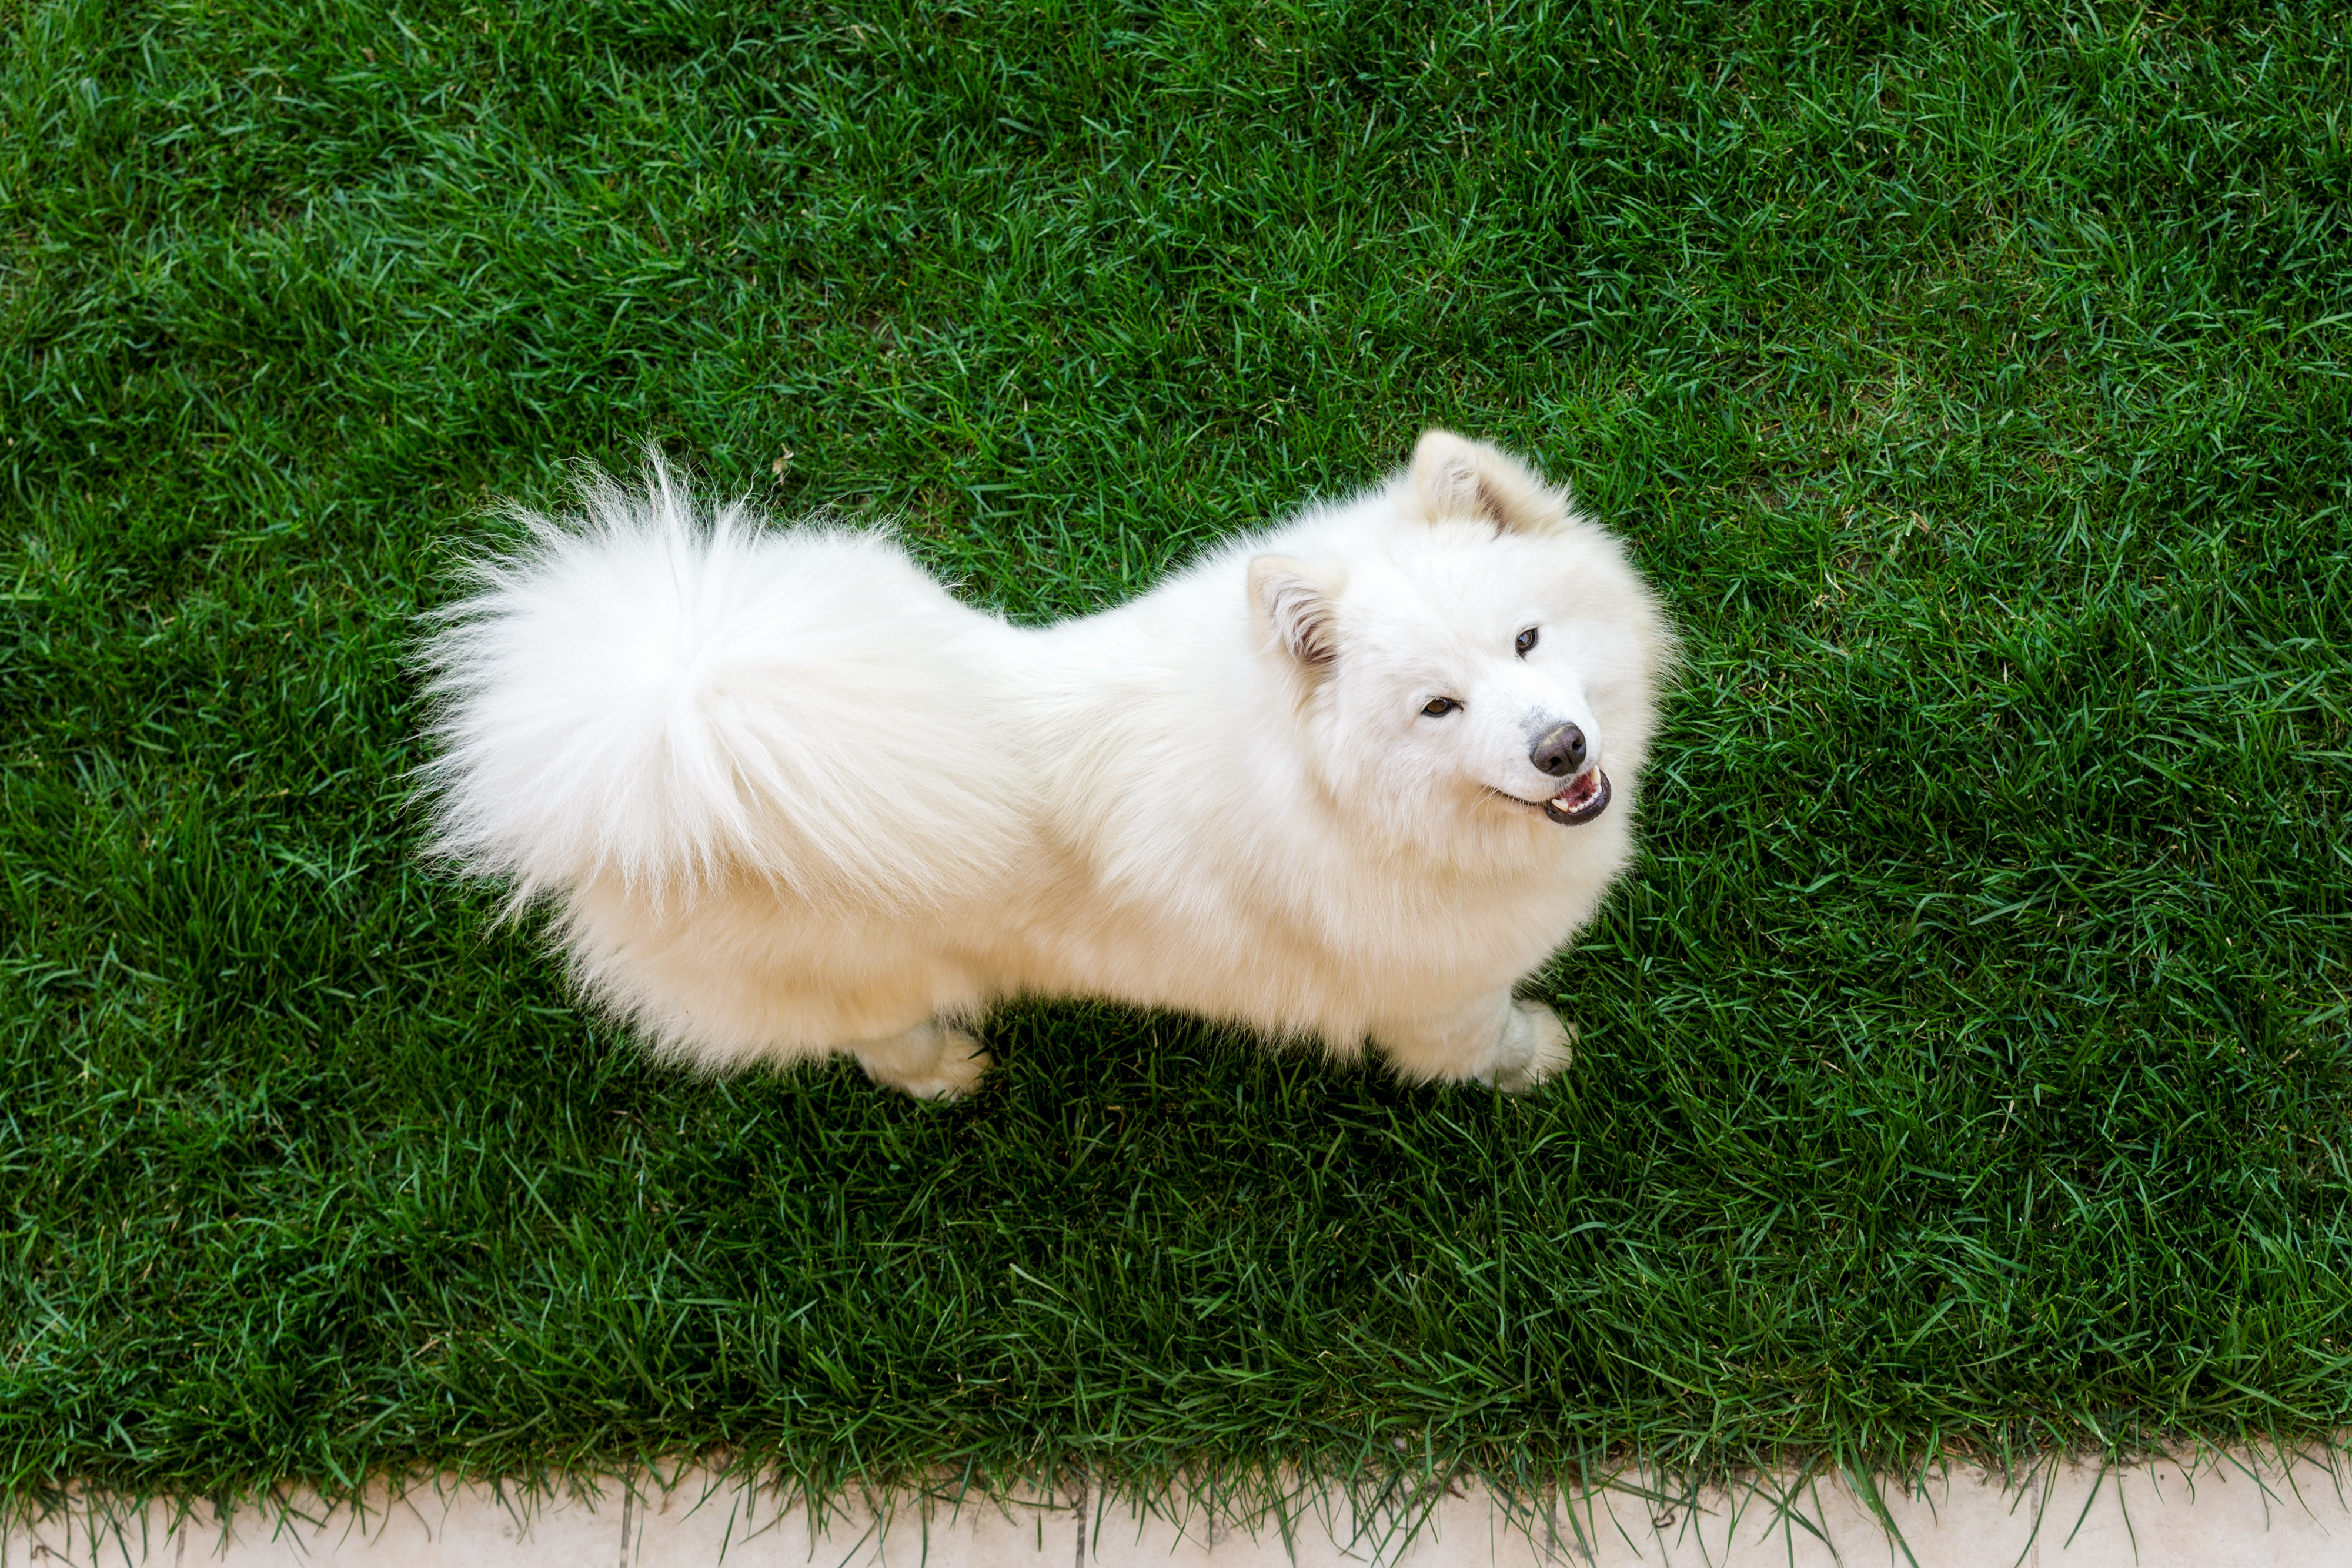 A Samoyed with a beautiful long hypoallergenic coat